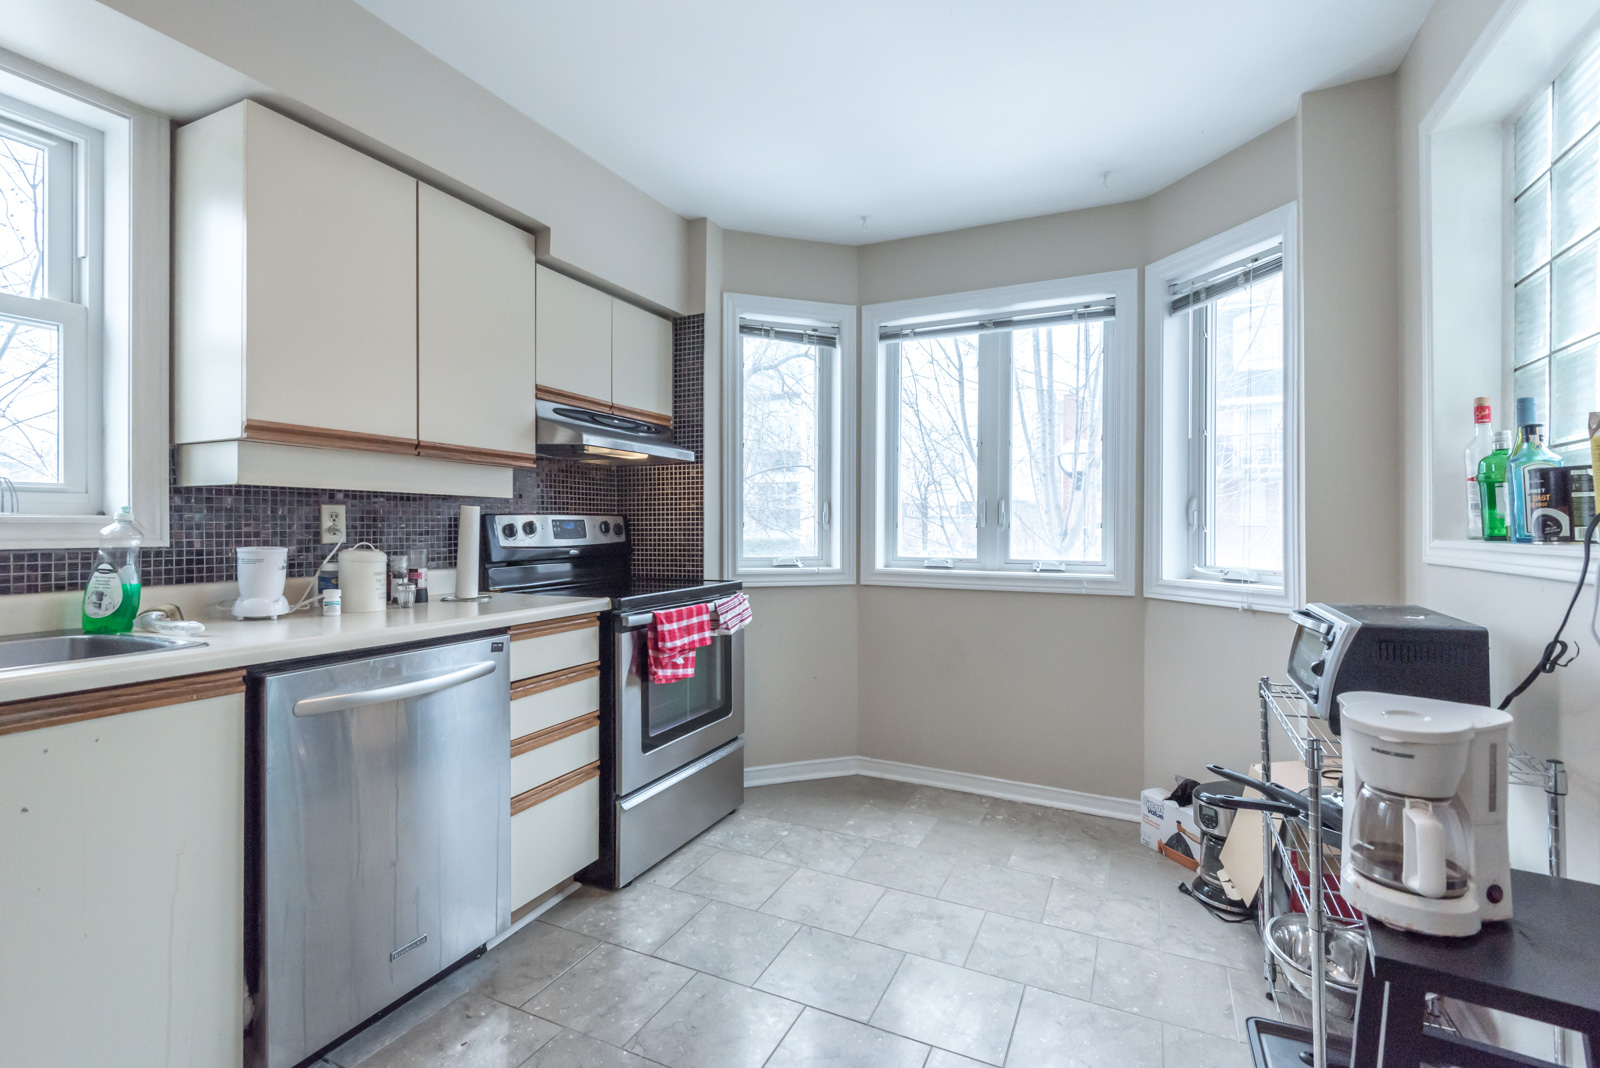 32D Shank Street - 2 Beds + 2.5 Baths - Leased - Wins Lai